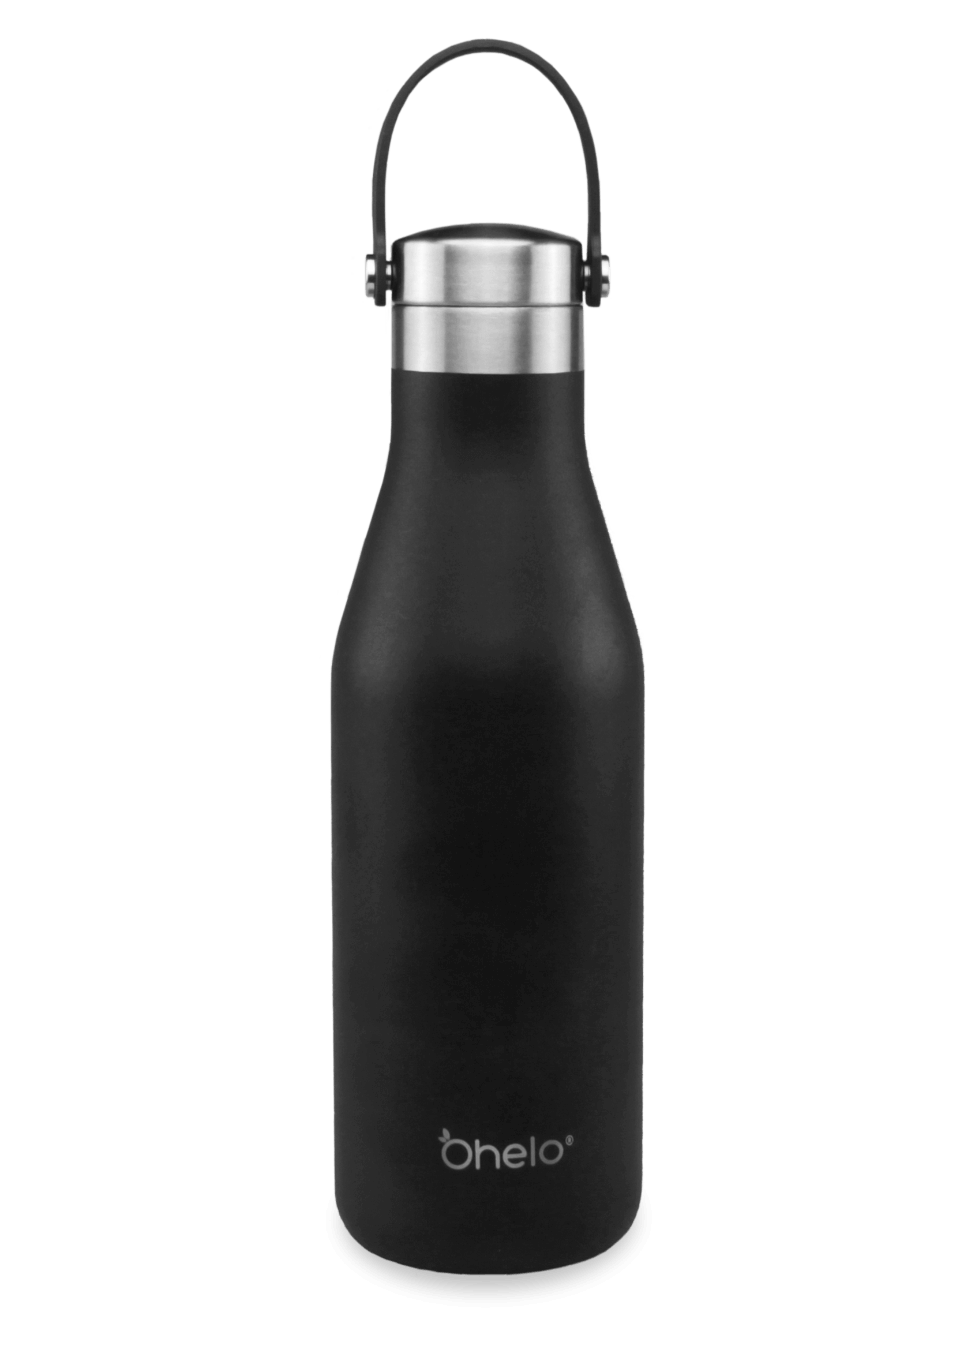 Ohelo reusable stainless steel water bottle black